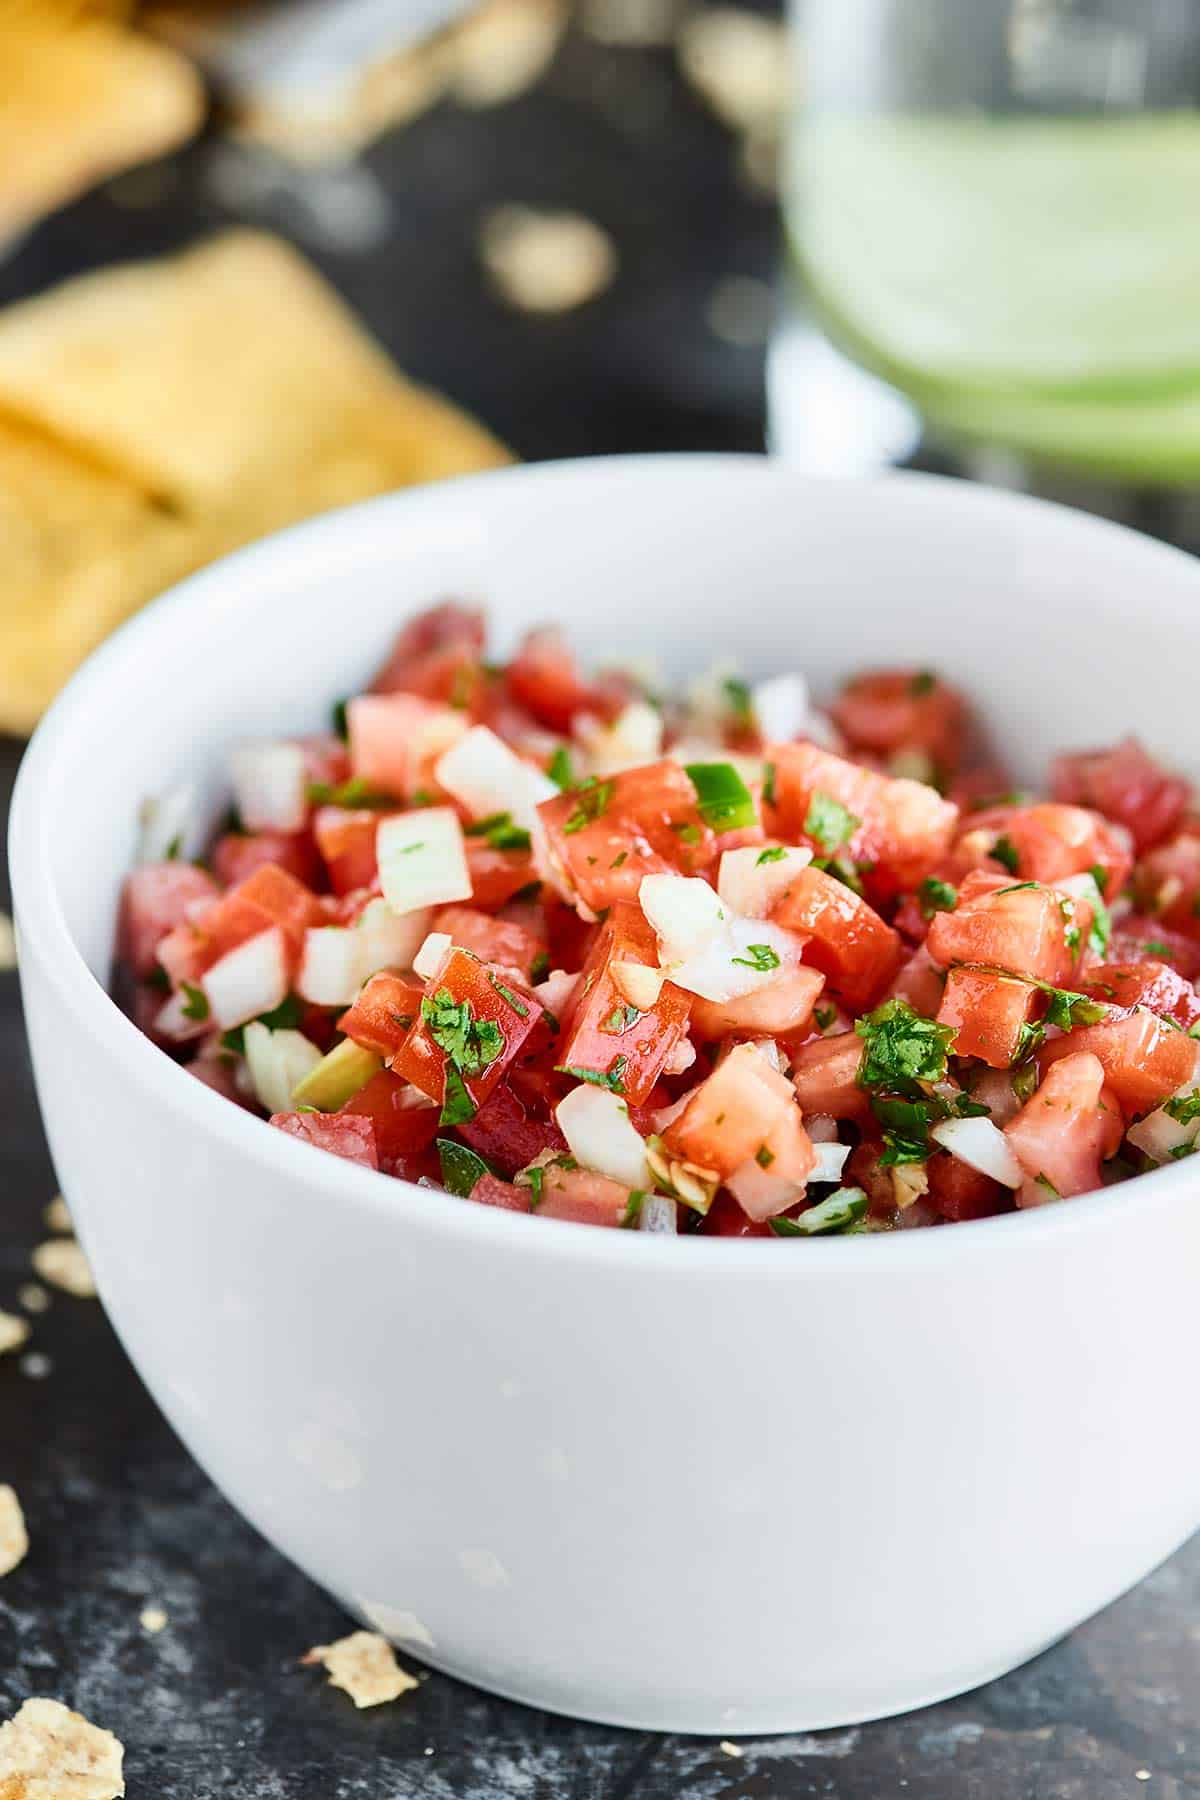 This Easy Pico de Gallo Recipe comes together in a matter of minutes! Fresh tomatoes, onion, cilantro, jalapeno, lime, & garlic make this truly delicious. showmetheyummy.com #picodegallo #healthy #vegan